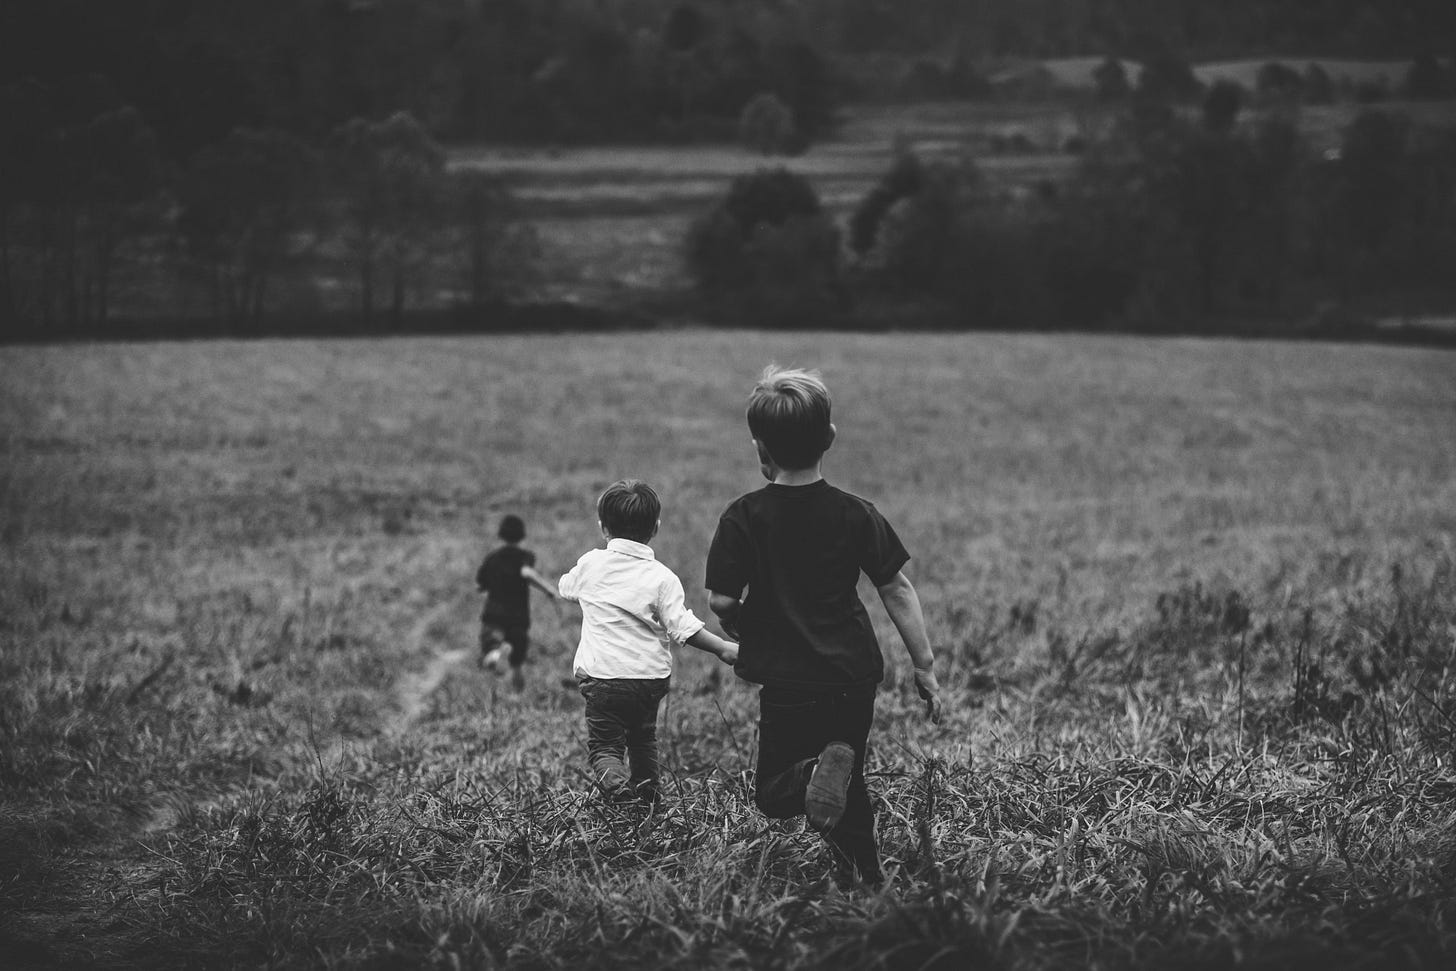 black and white photo of children running in a field for article by Larry G. Maguire